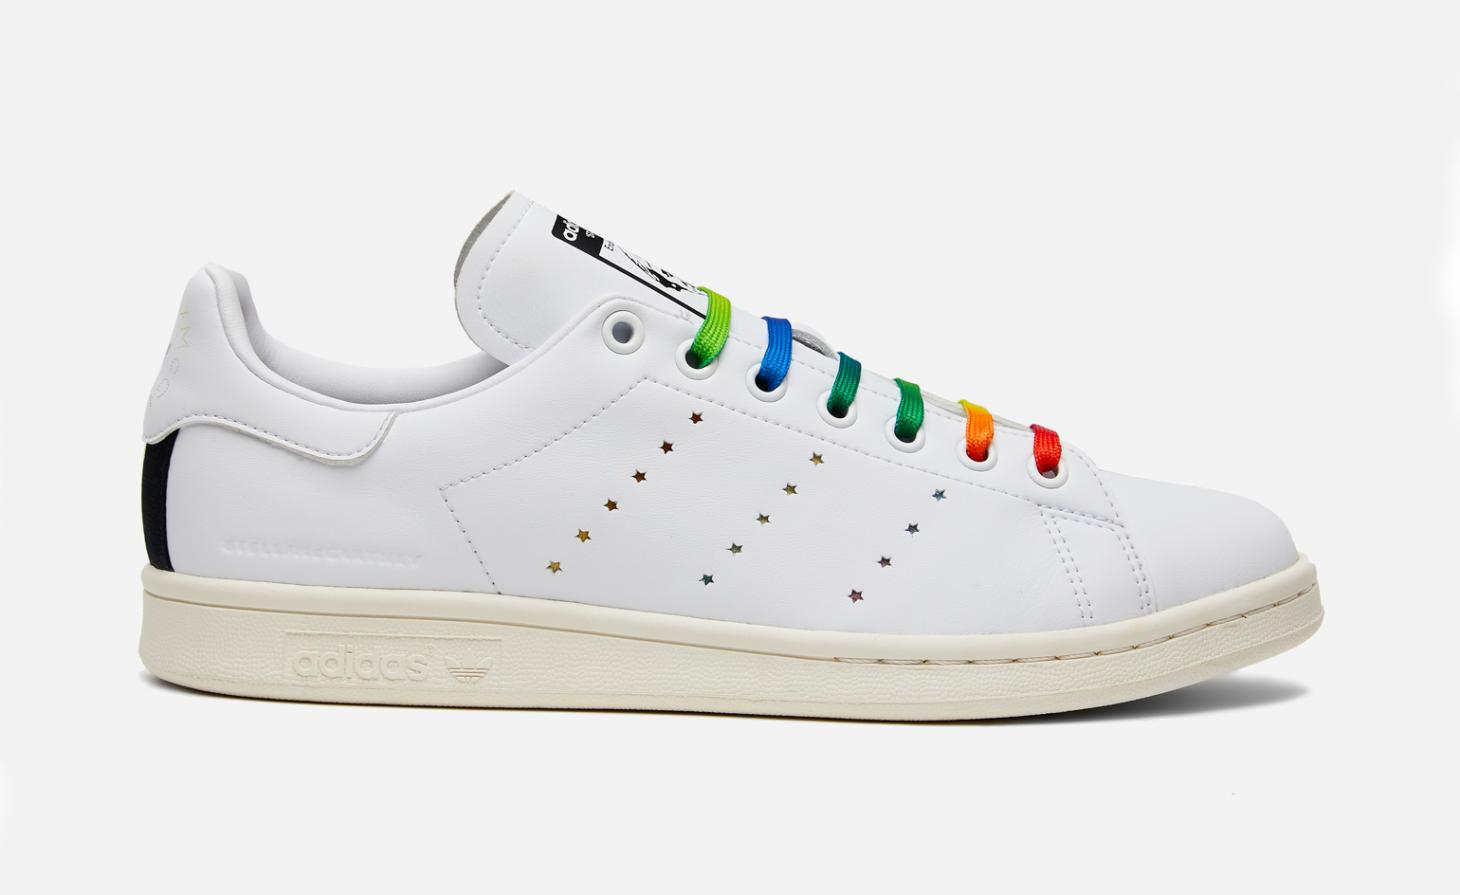 Stella McCartney Adidas Stan Smith Rainbow sneaker